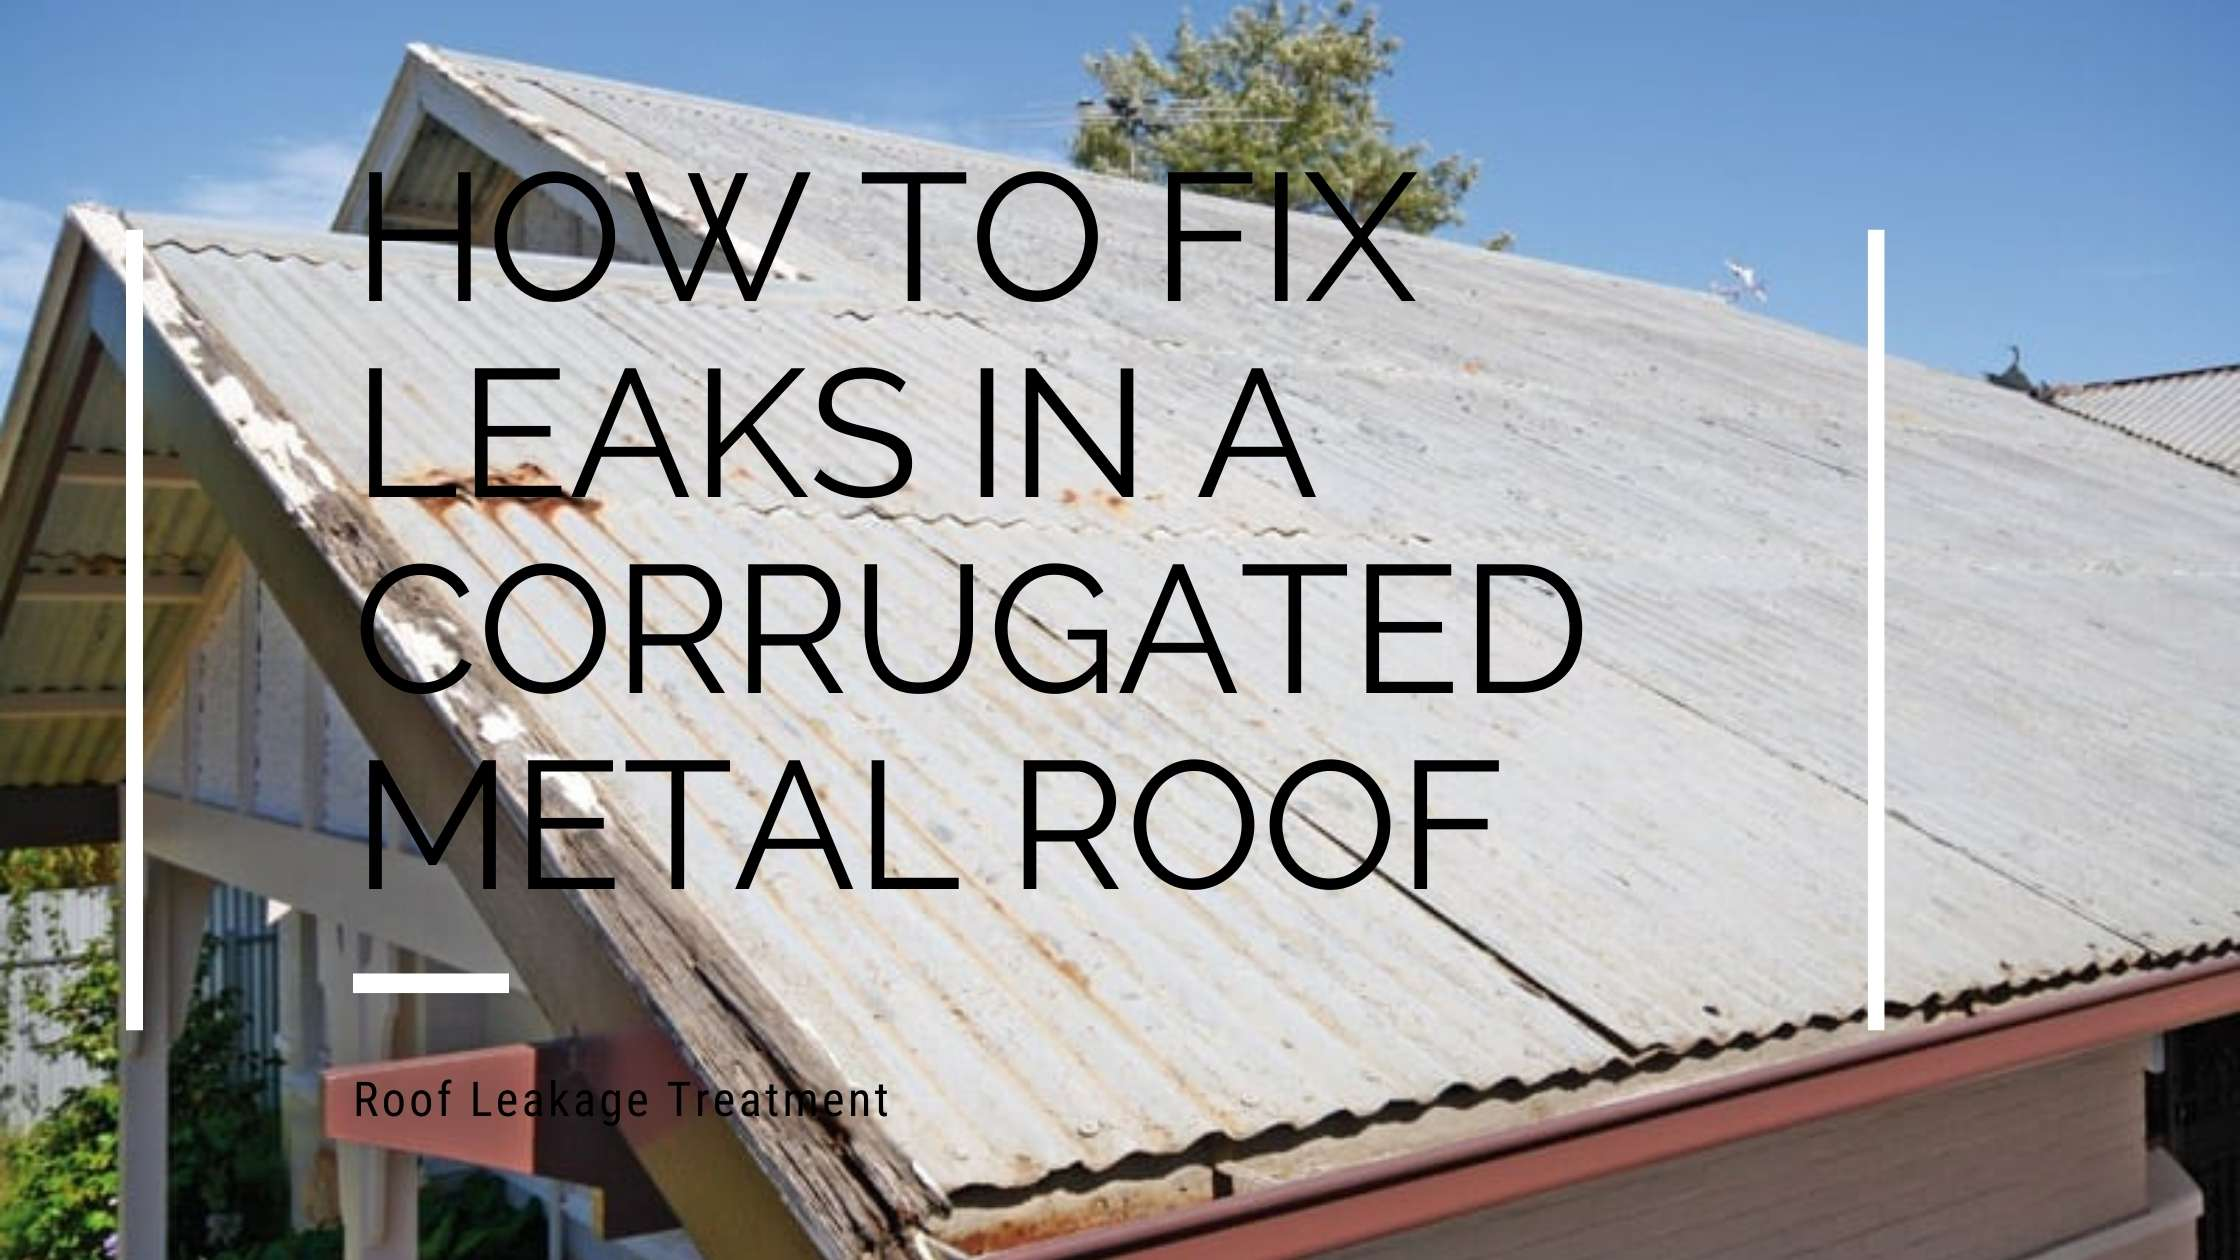 How-To-Fix-Leaks-in-a-Corrugated-Metal-Roof-